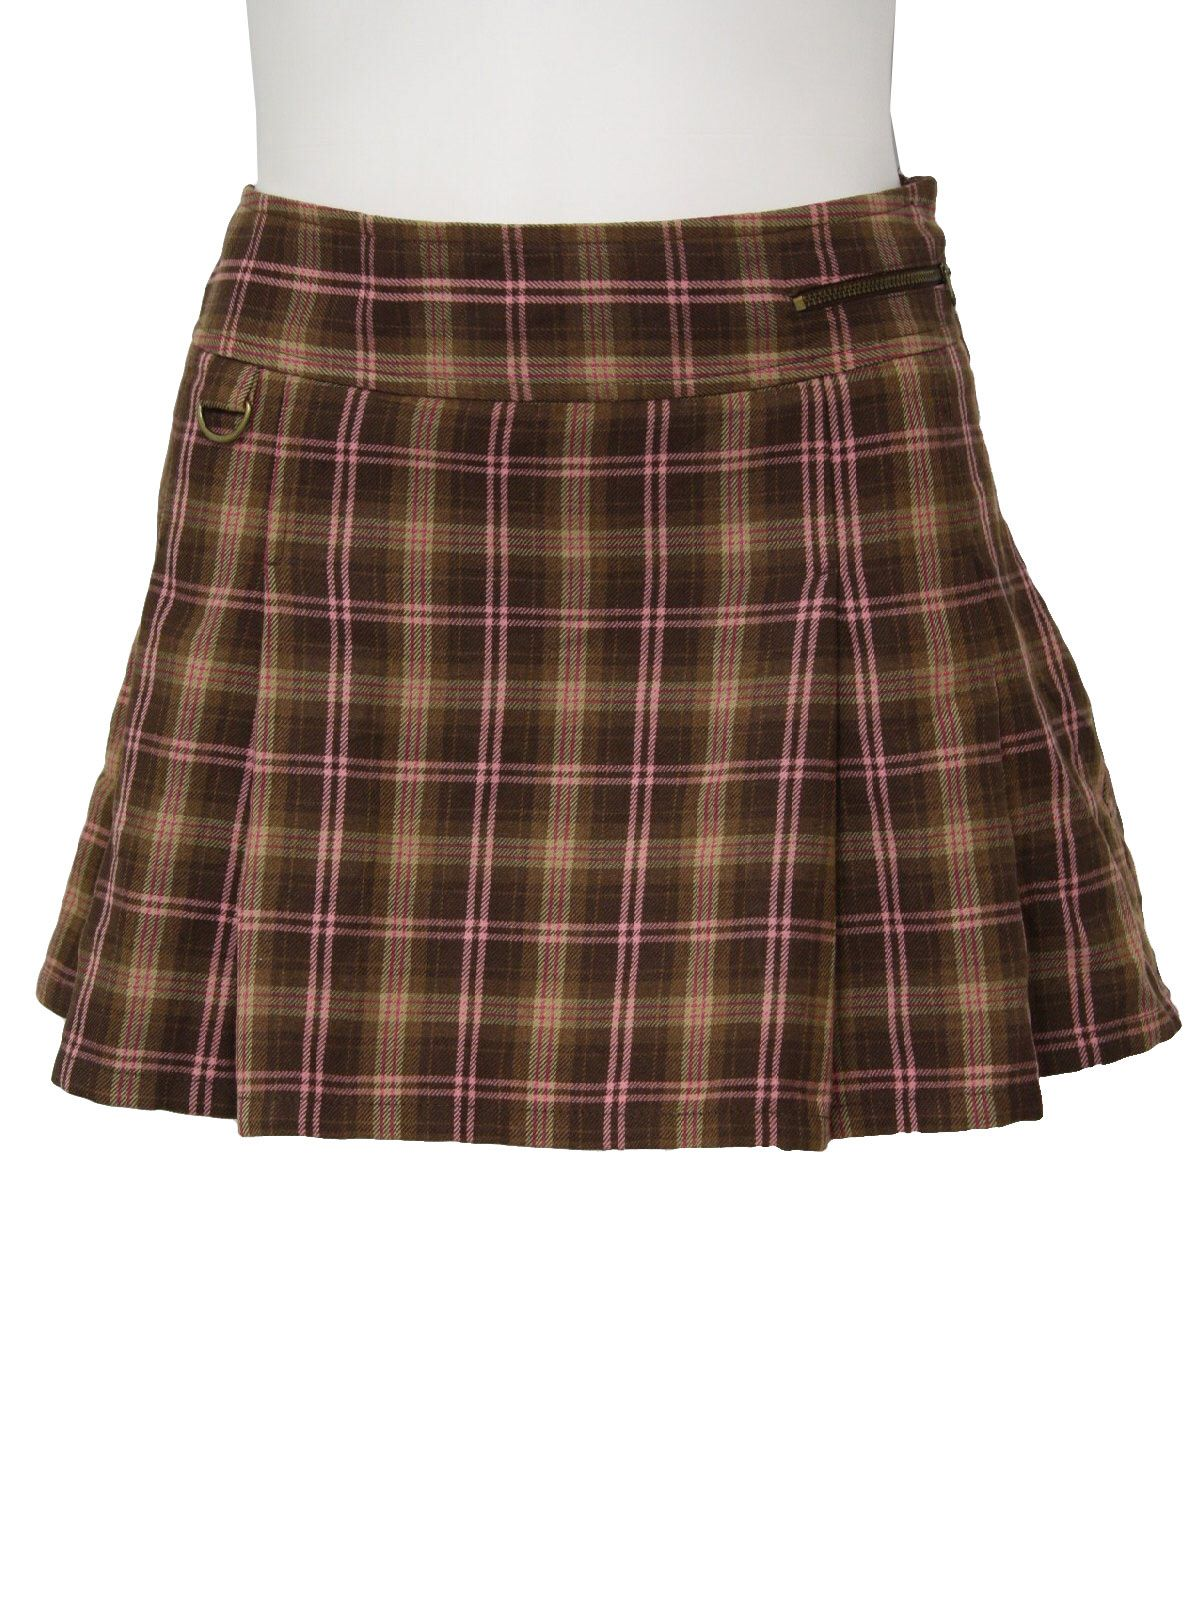 2902a4378a Shades For Women, Plaid Pleated Skirt, School Bags, School Uniforms, Label,